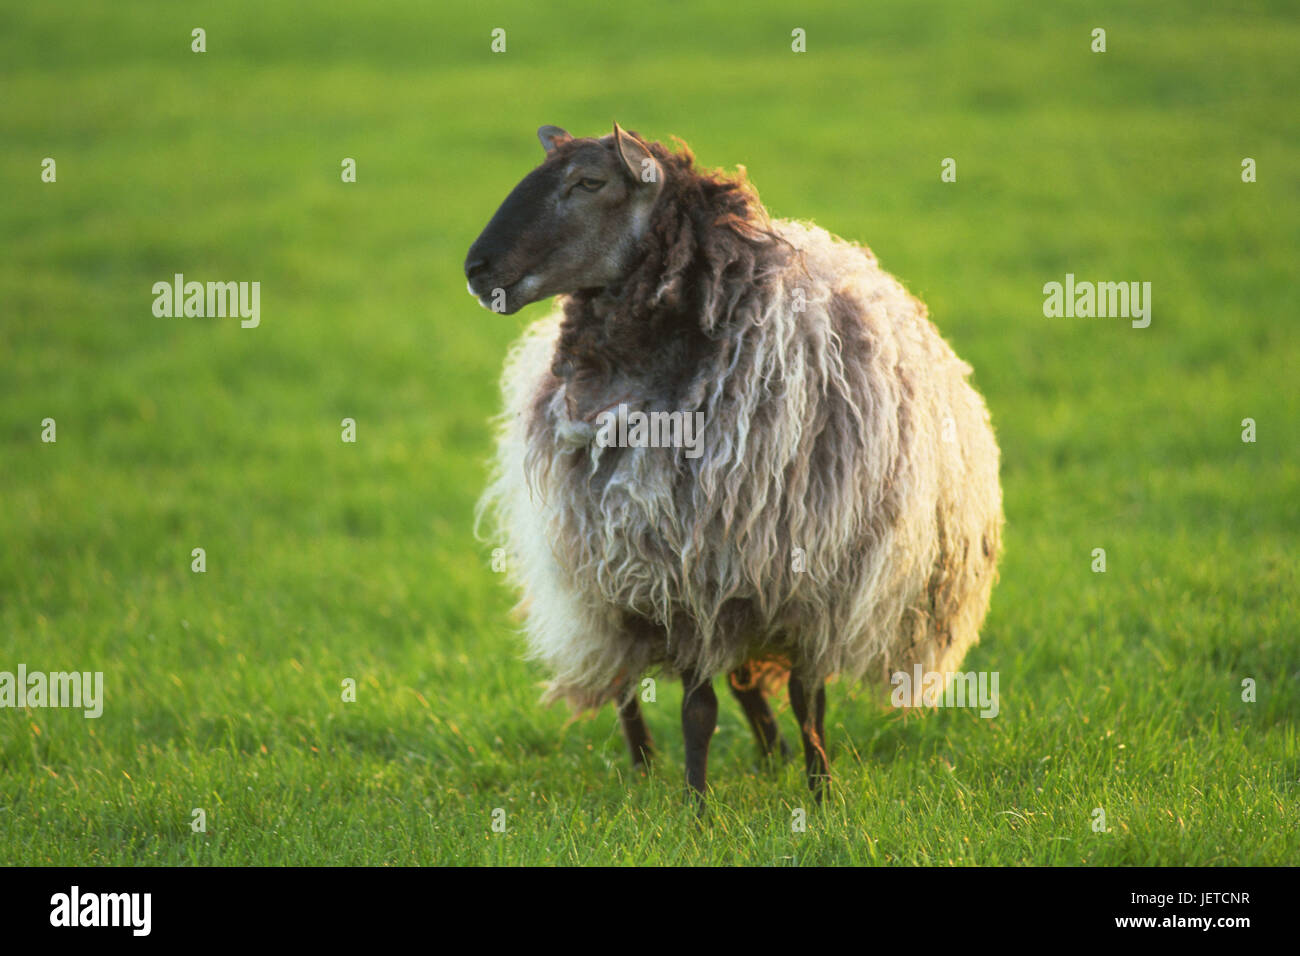 Meadow, sheep, Cotswolds, agriculture, cattle economy, animal, mammal, benefit animal, cattle breeding, stockbreeding, Stock Photo